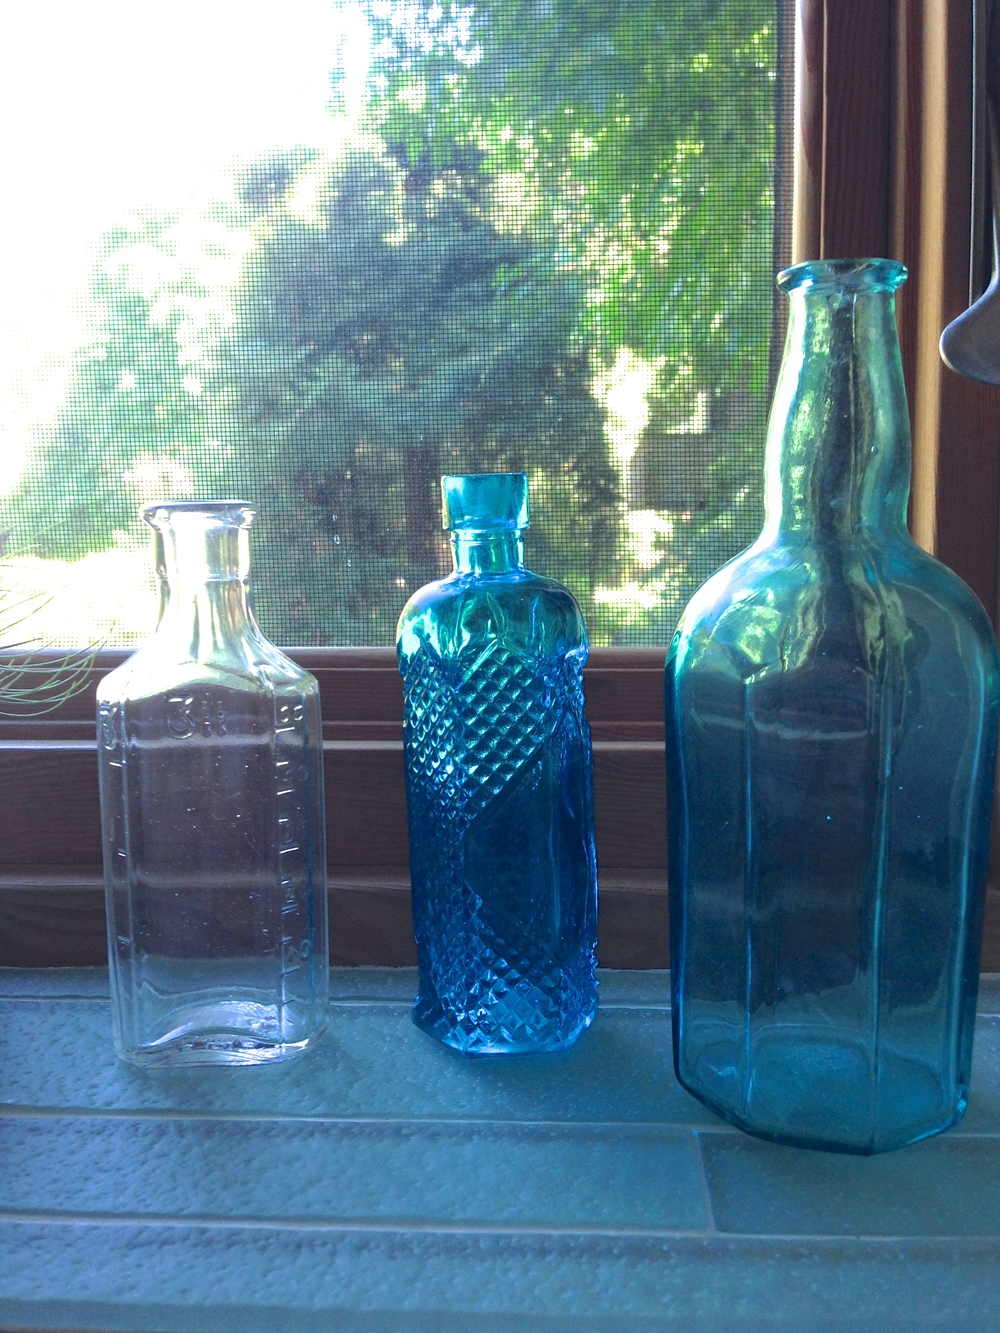 Old bottles, $0.50 each